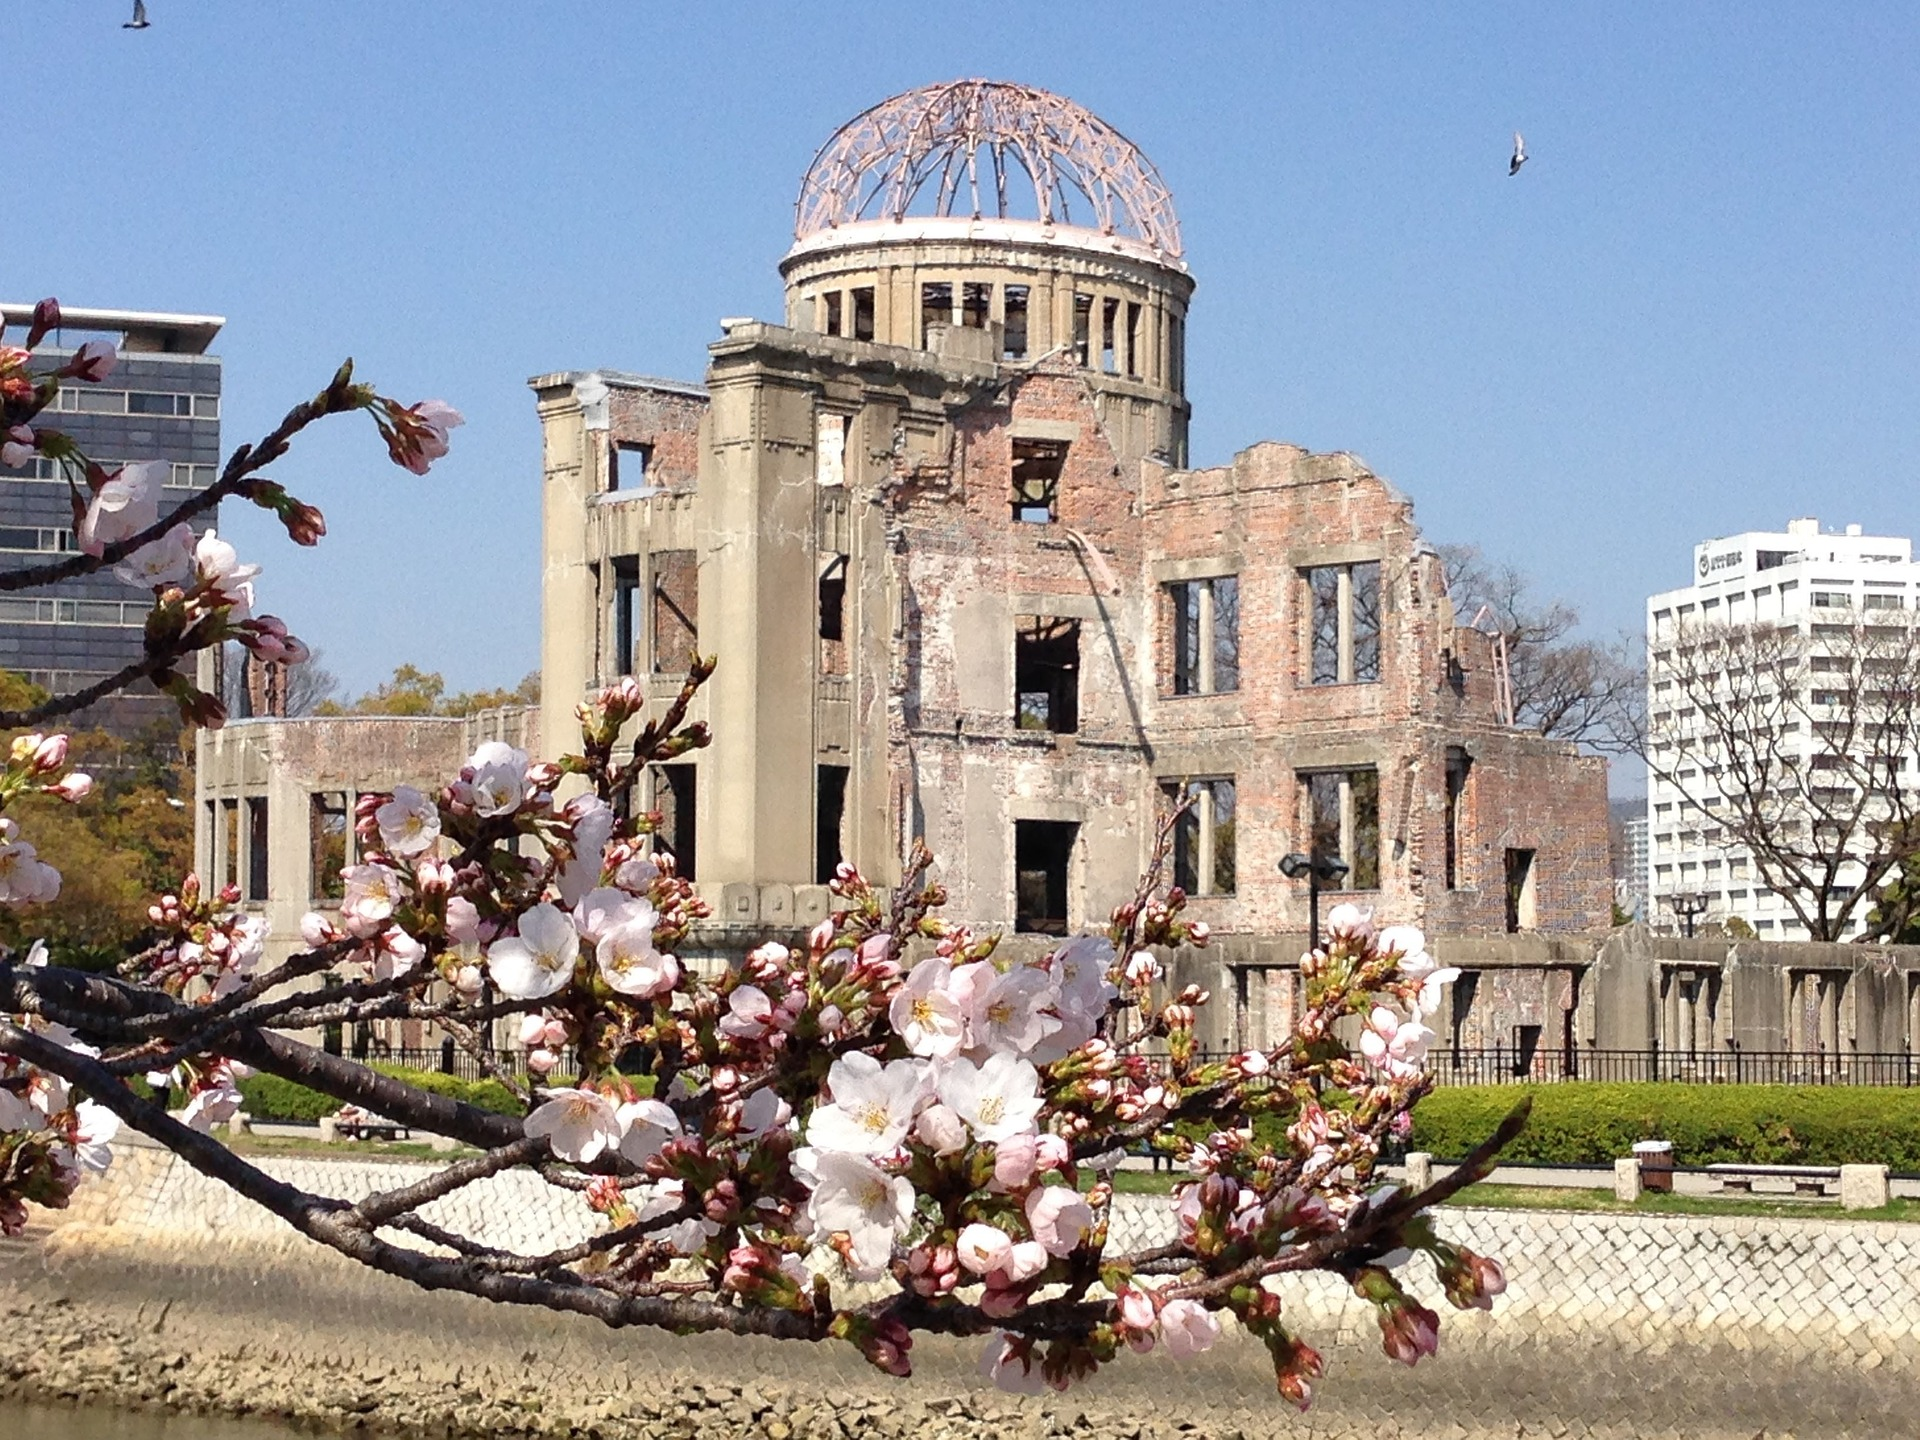 Genbaku Dome, the peace memorial in Hiroshima for the people killed in the atomic bombing of the city on August 6, 1945. Credit: neil137/pixabay